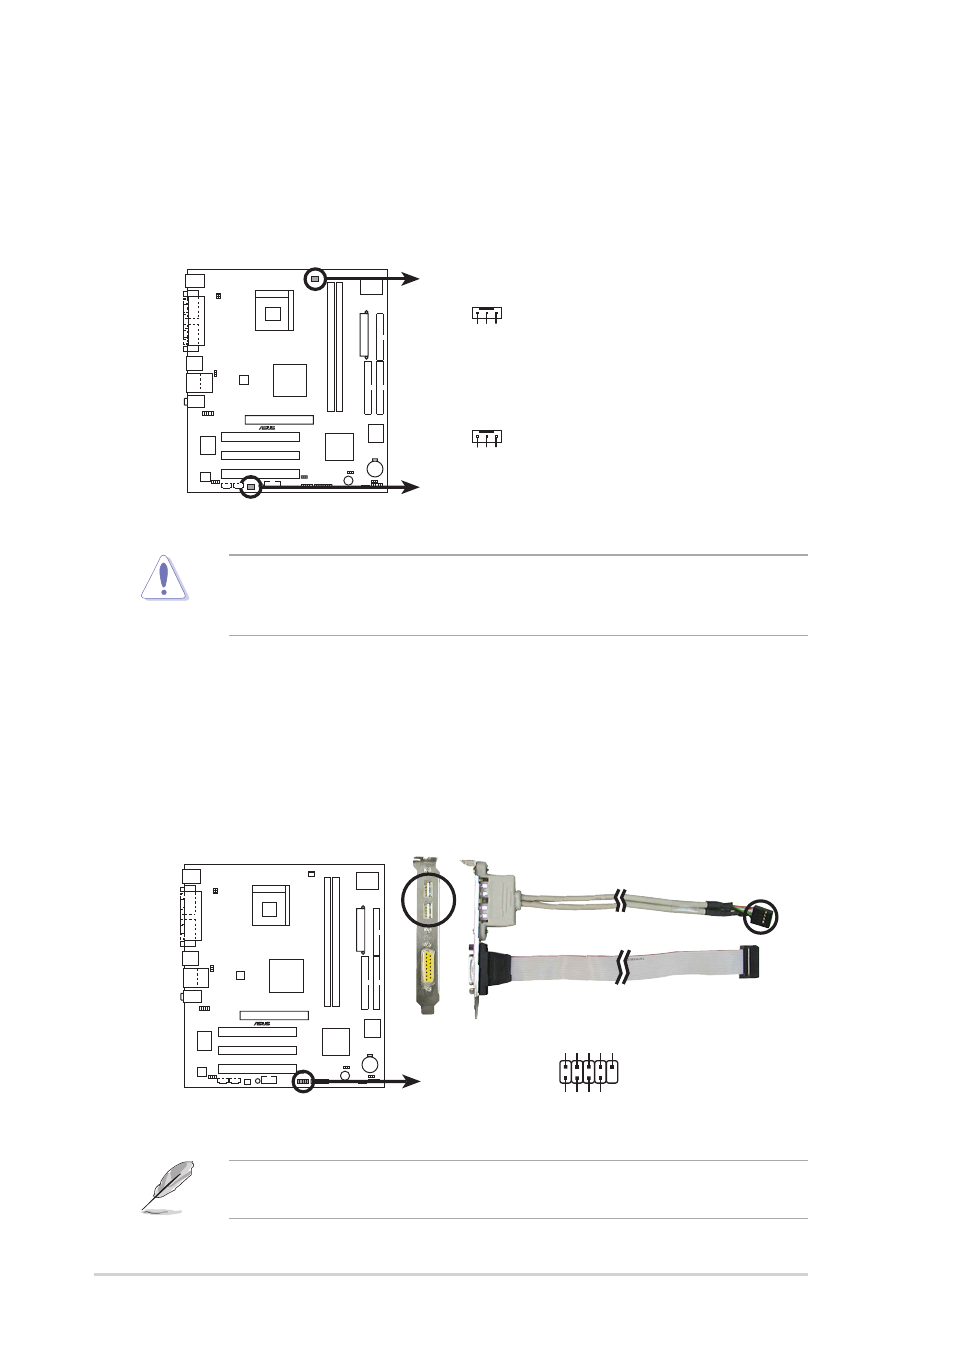 18 Chapter 1 Product Introduction Asus P4ge Mx User Manual Page Usb Cable Wiring Diagram 28 62